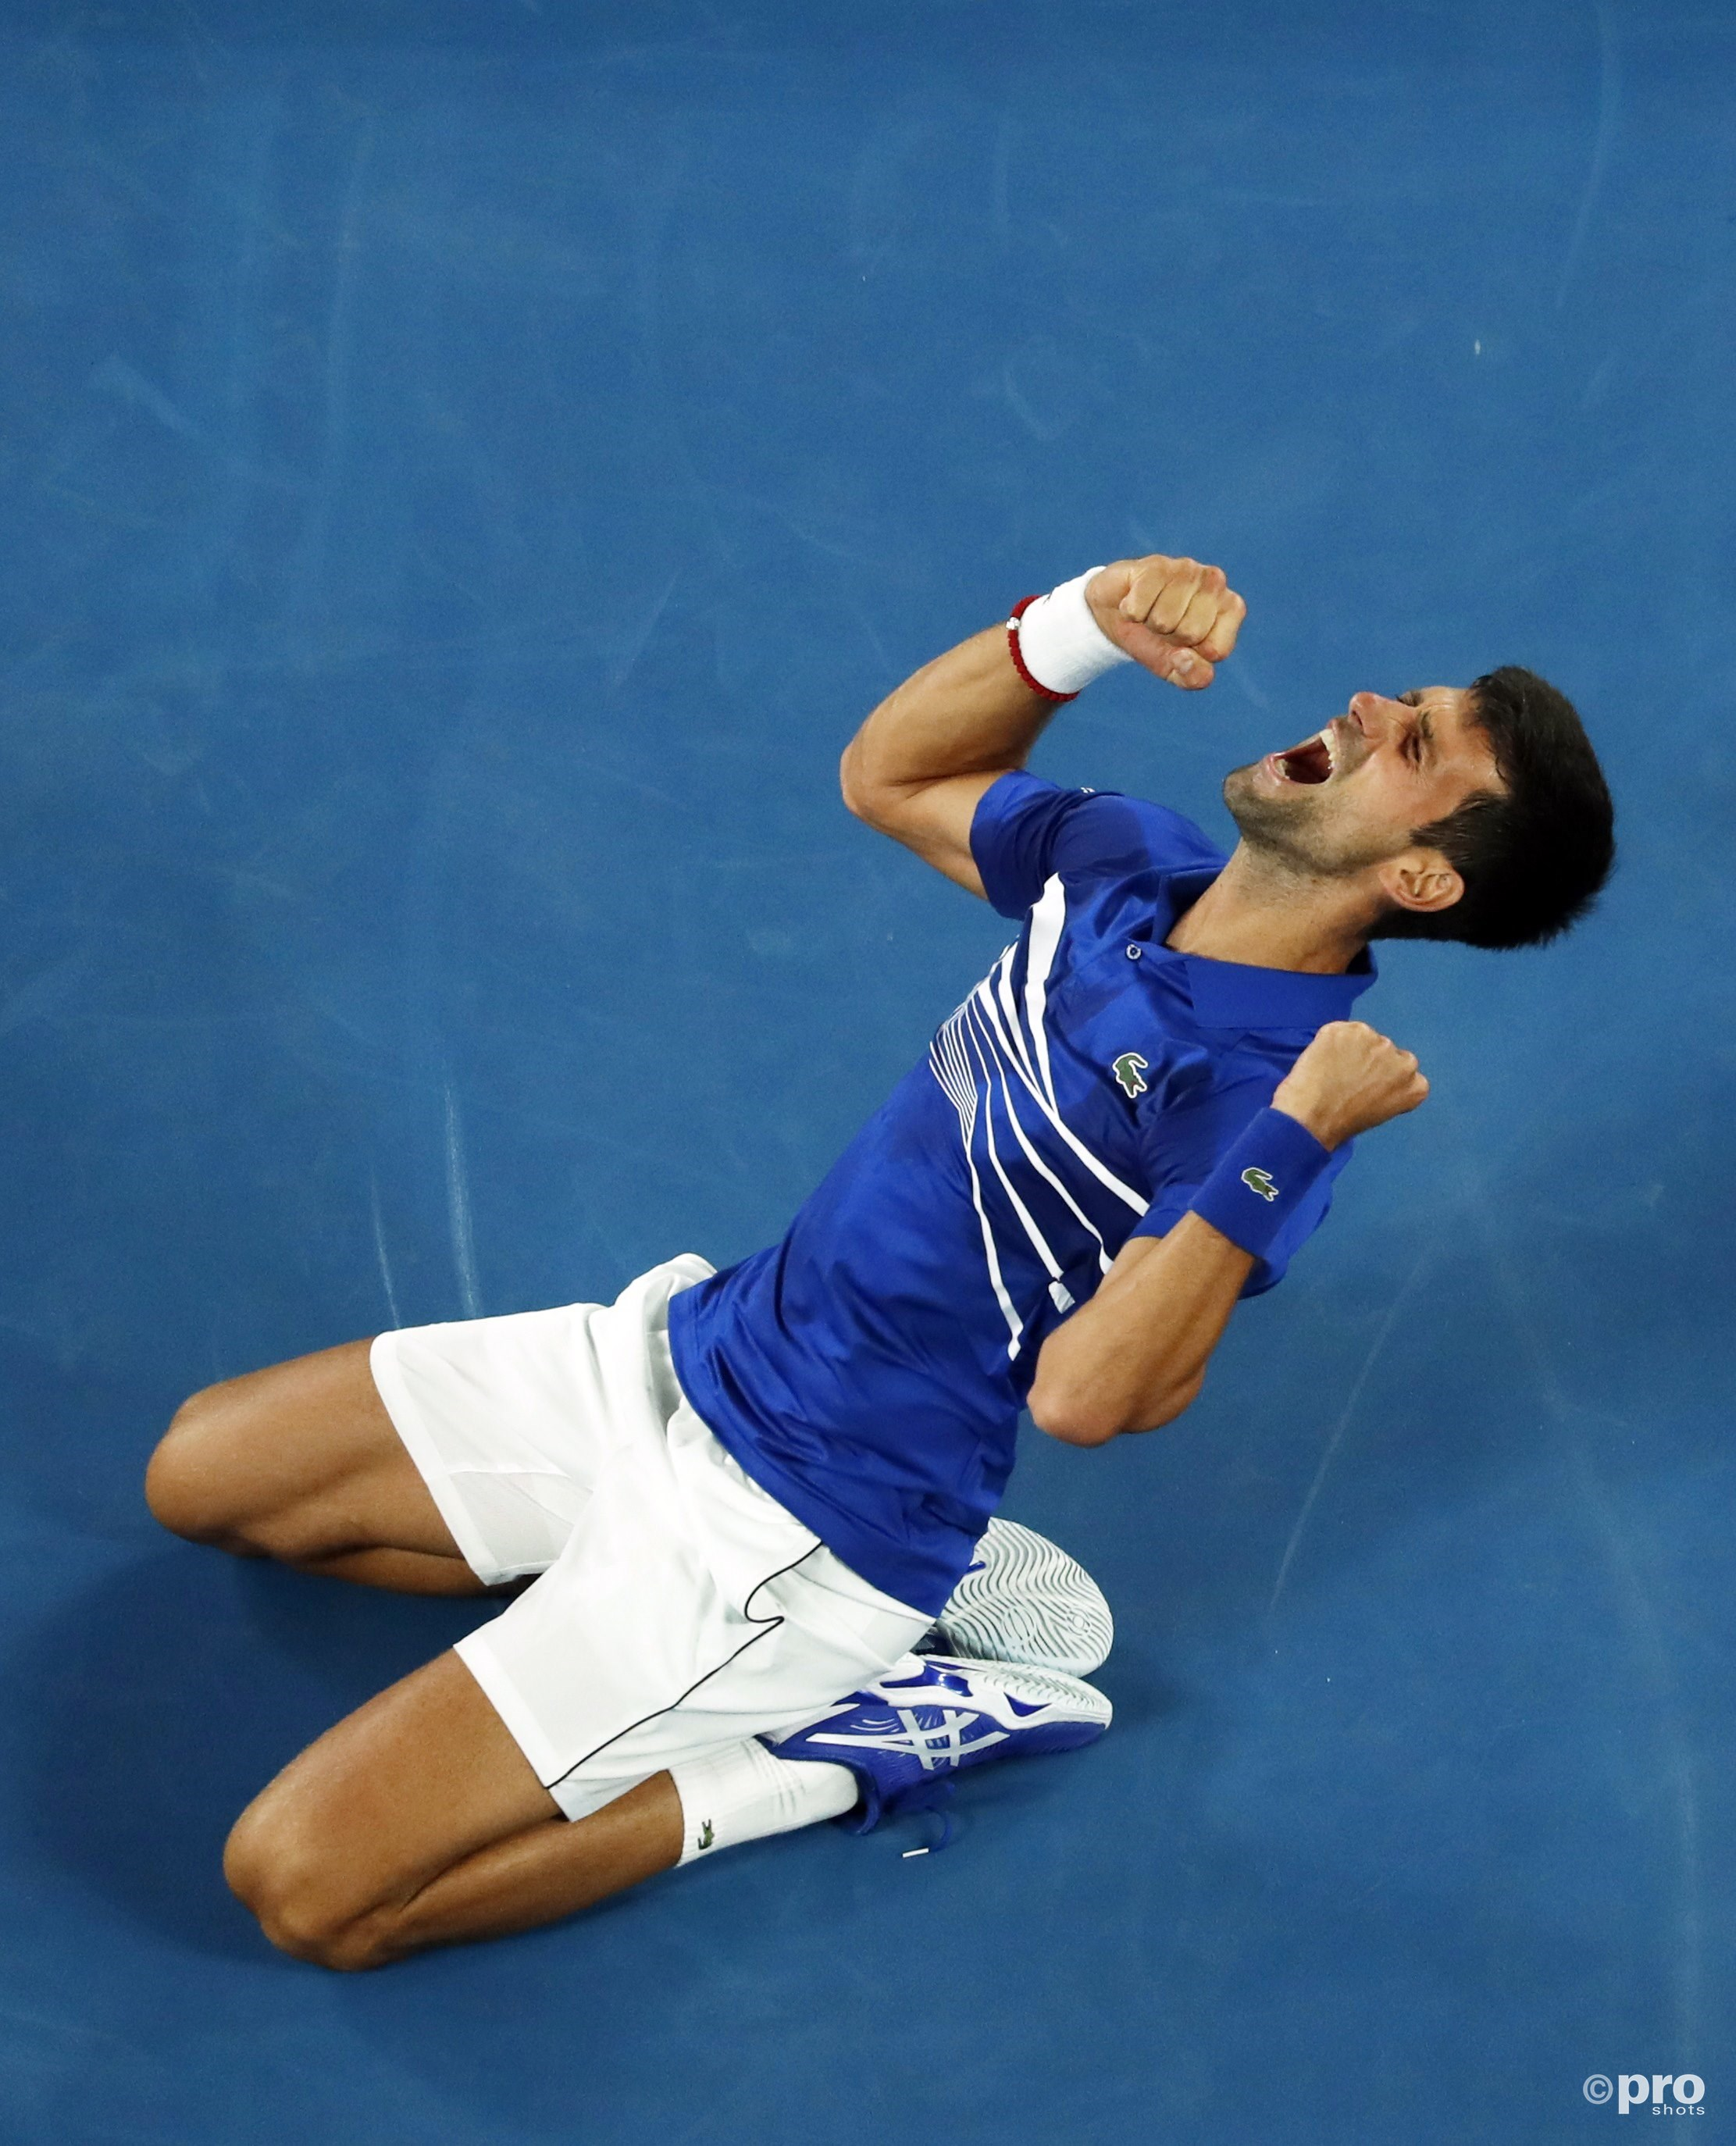 De zevende Australian Open-titel is binnen voor Djokovic (Pro Shots/Action Images)